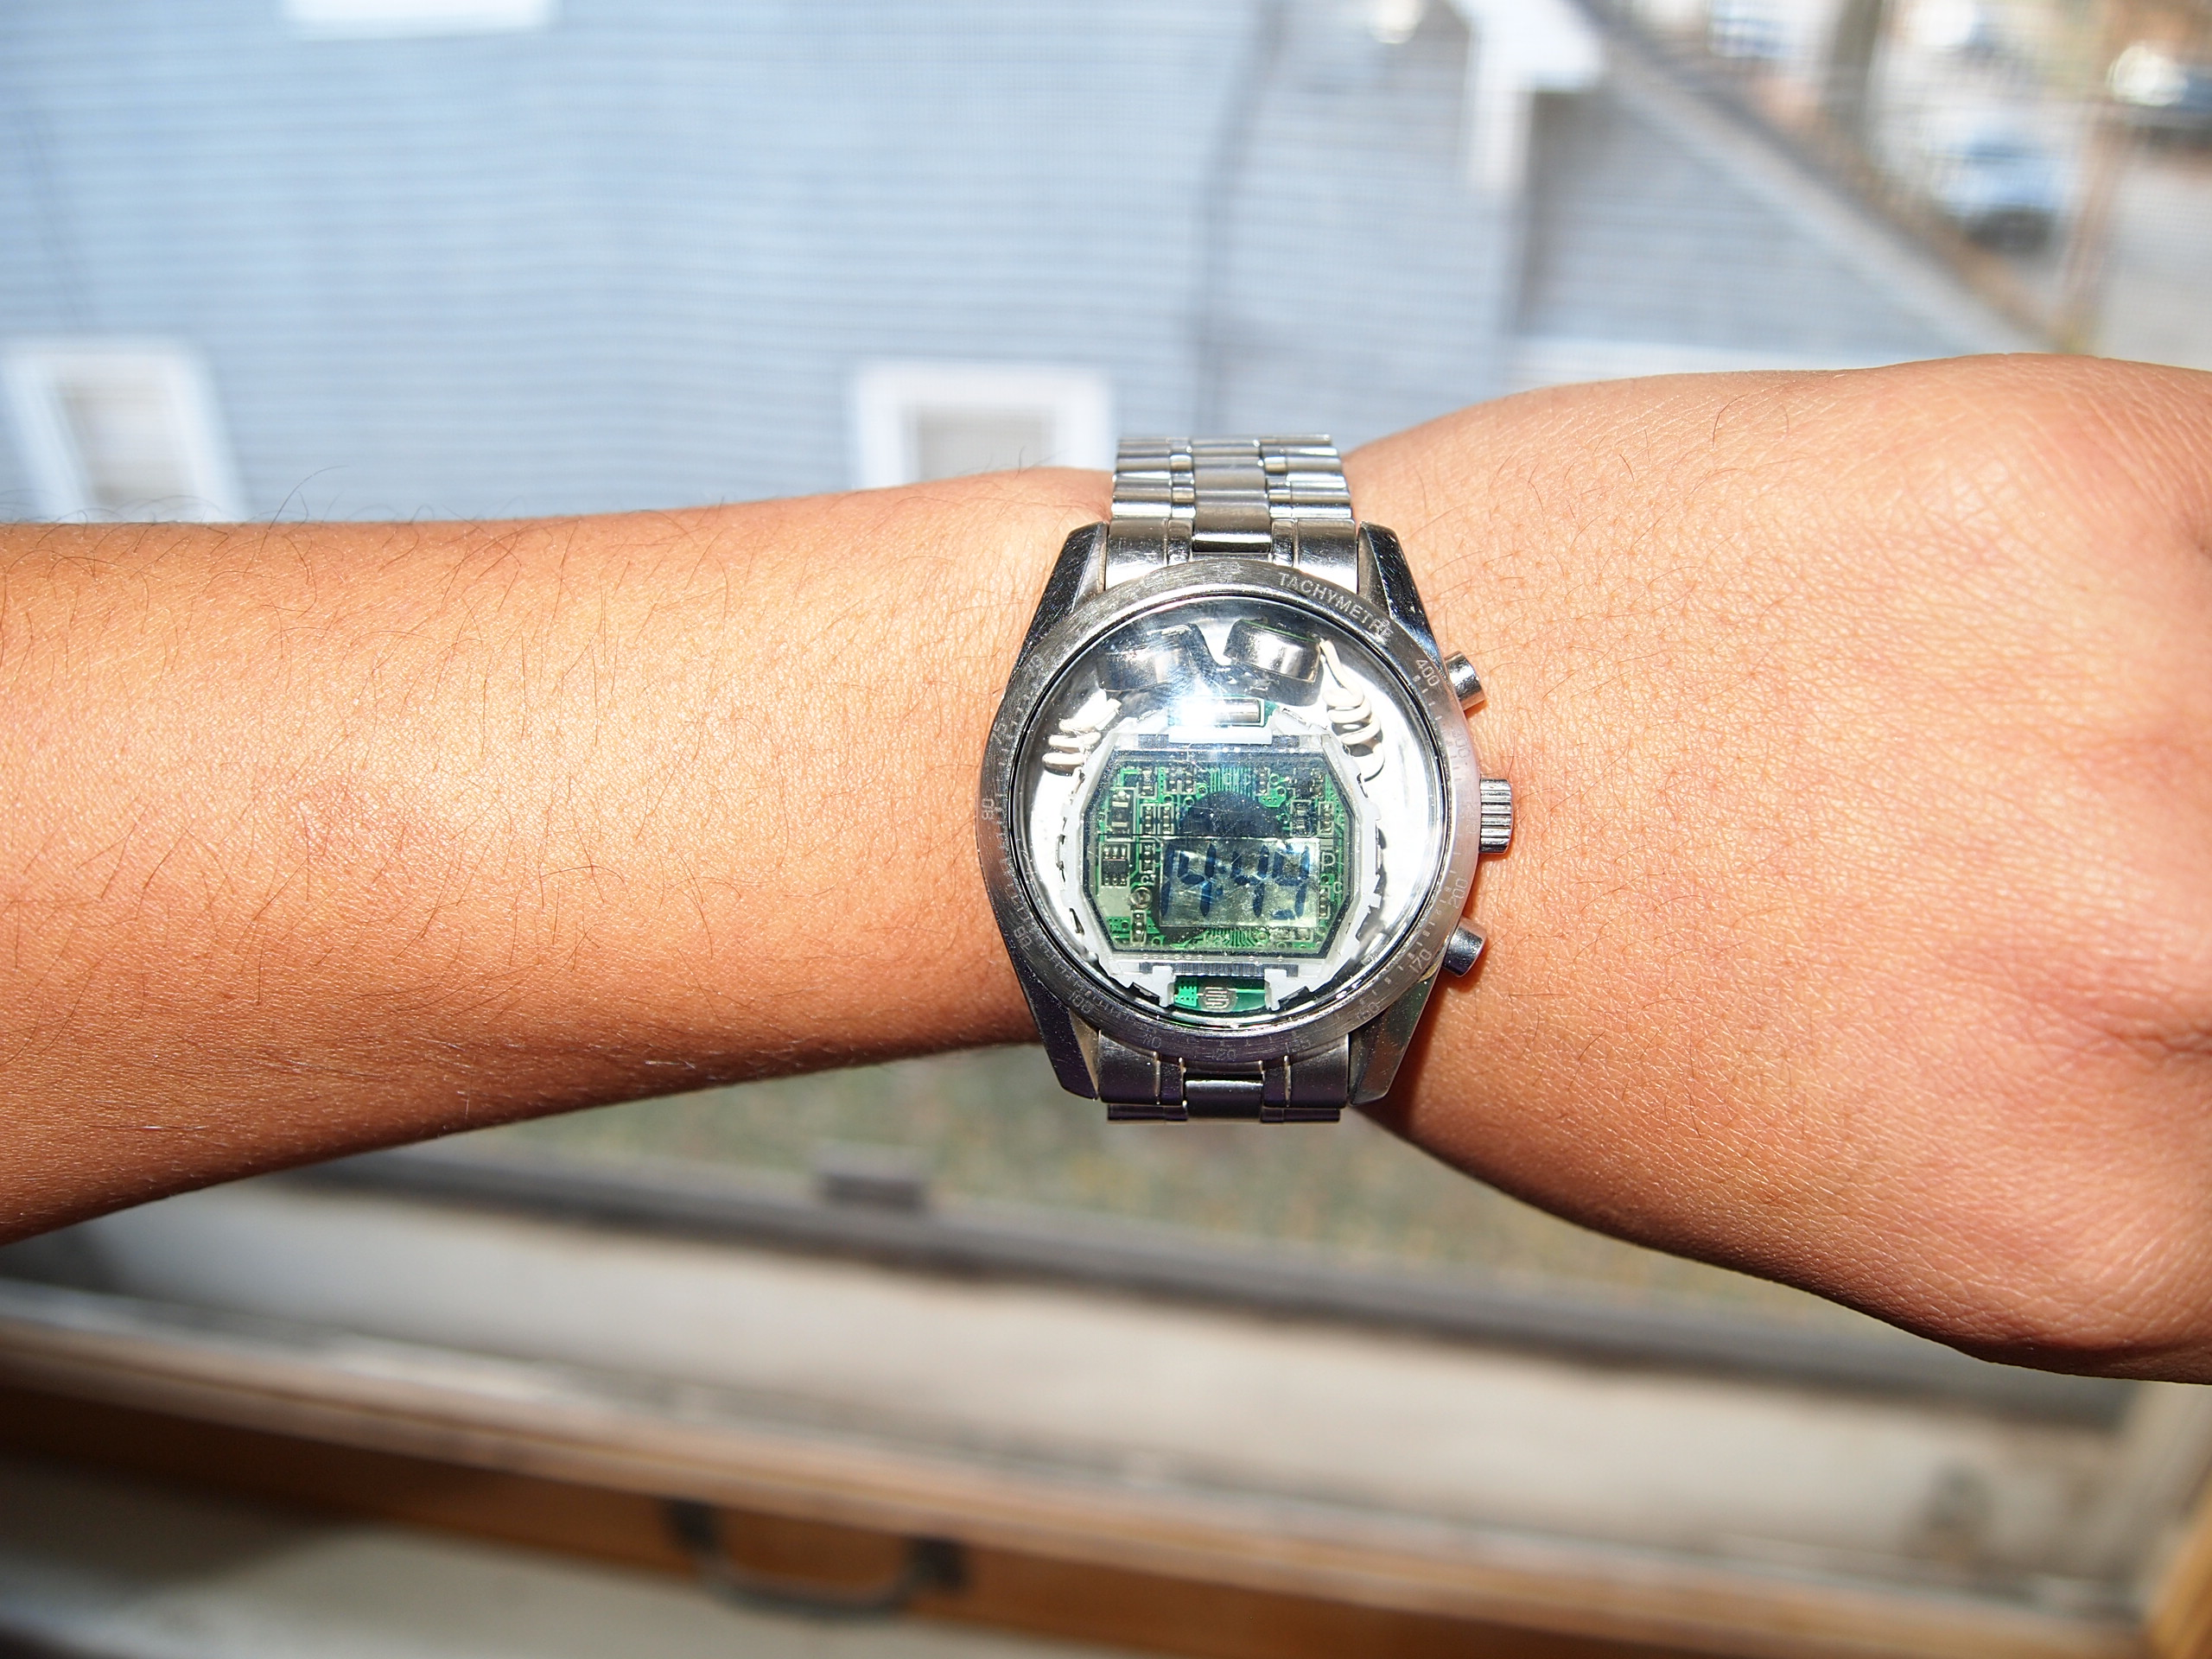 Build/modify a wrist watch! A great gift or just for yourself!